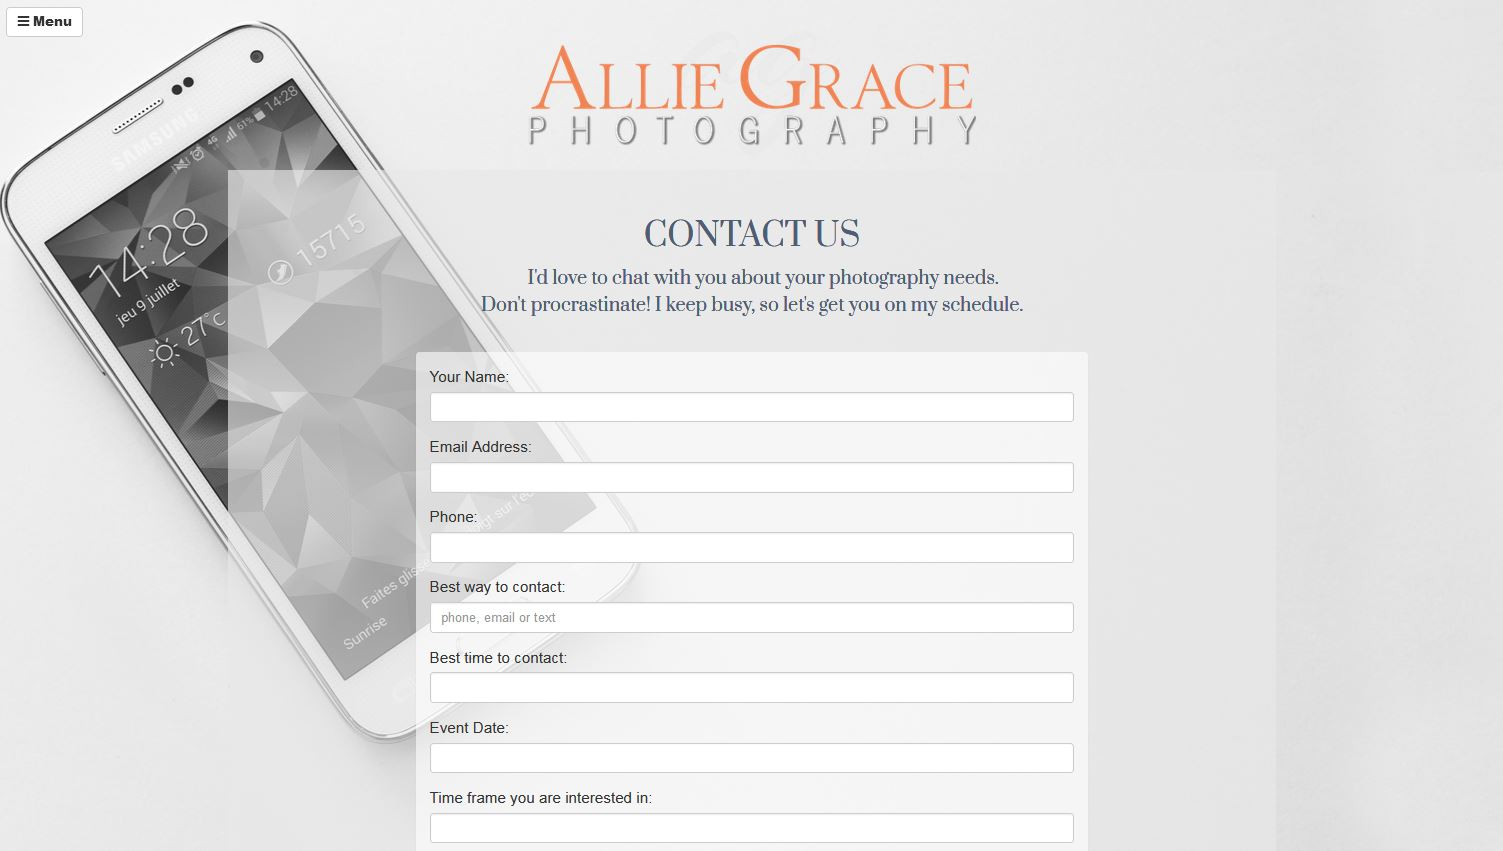 011_Contact Us